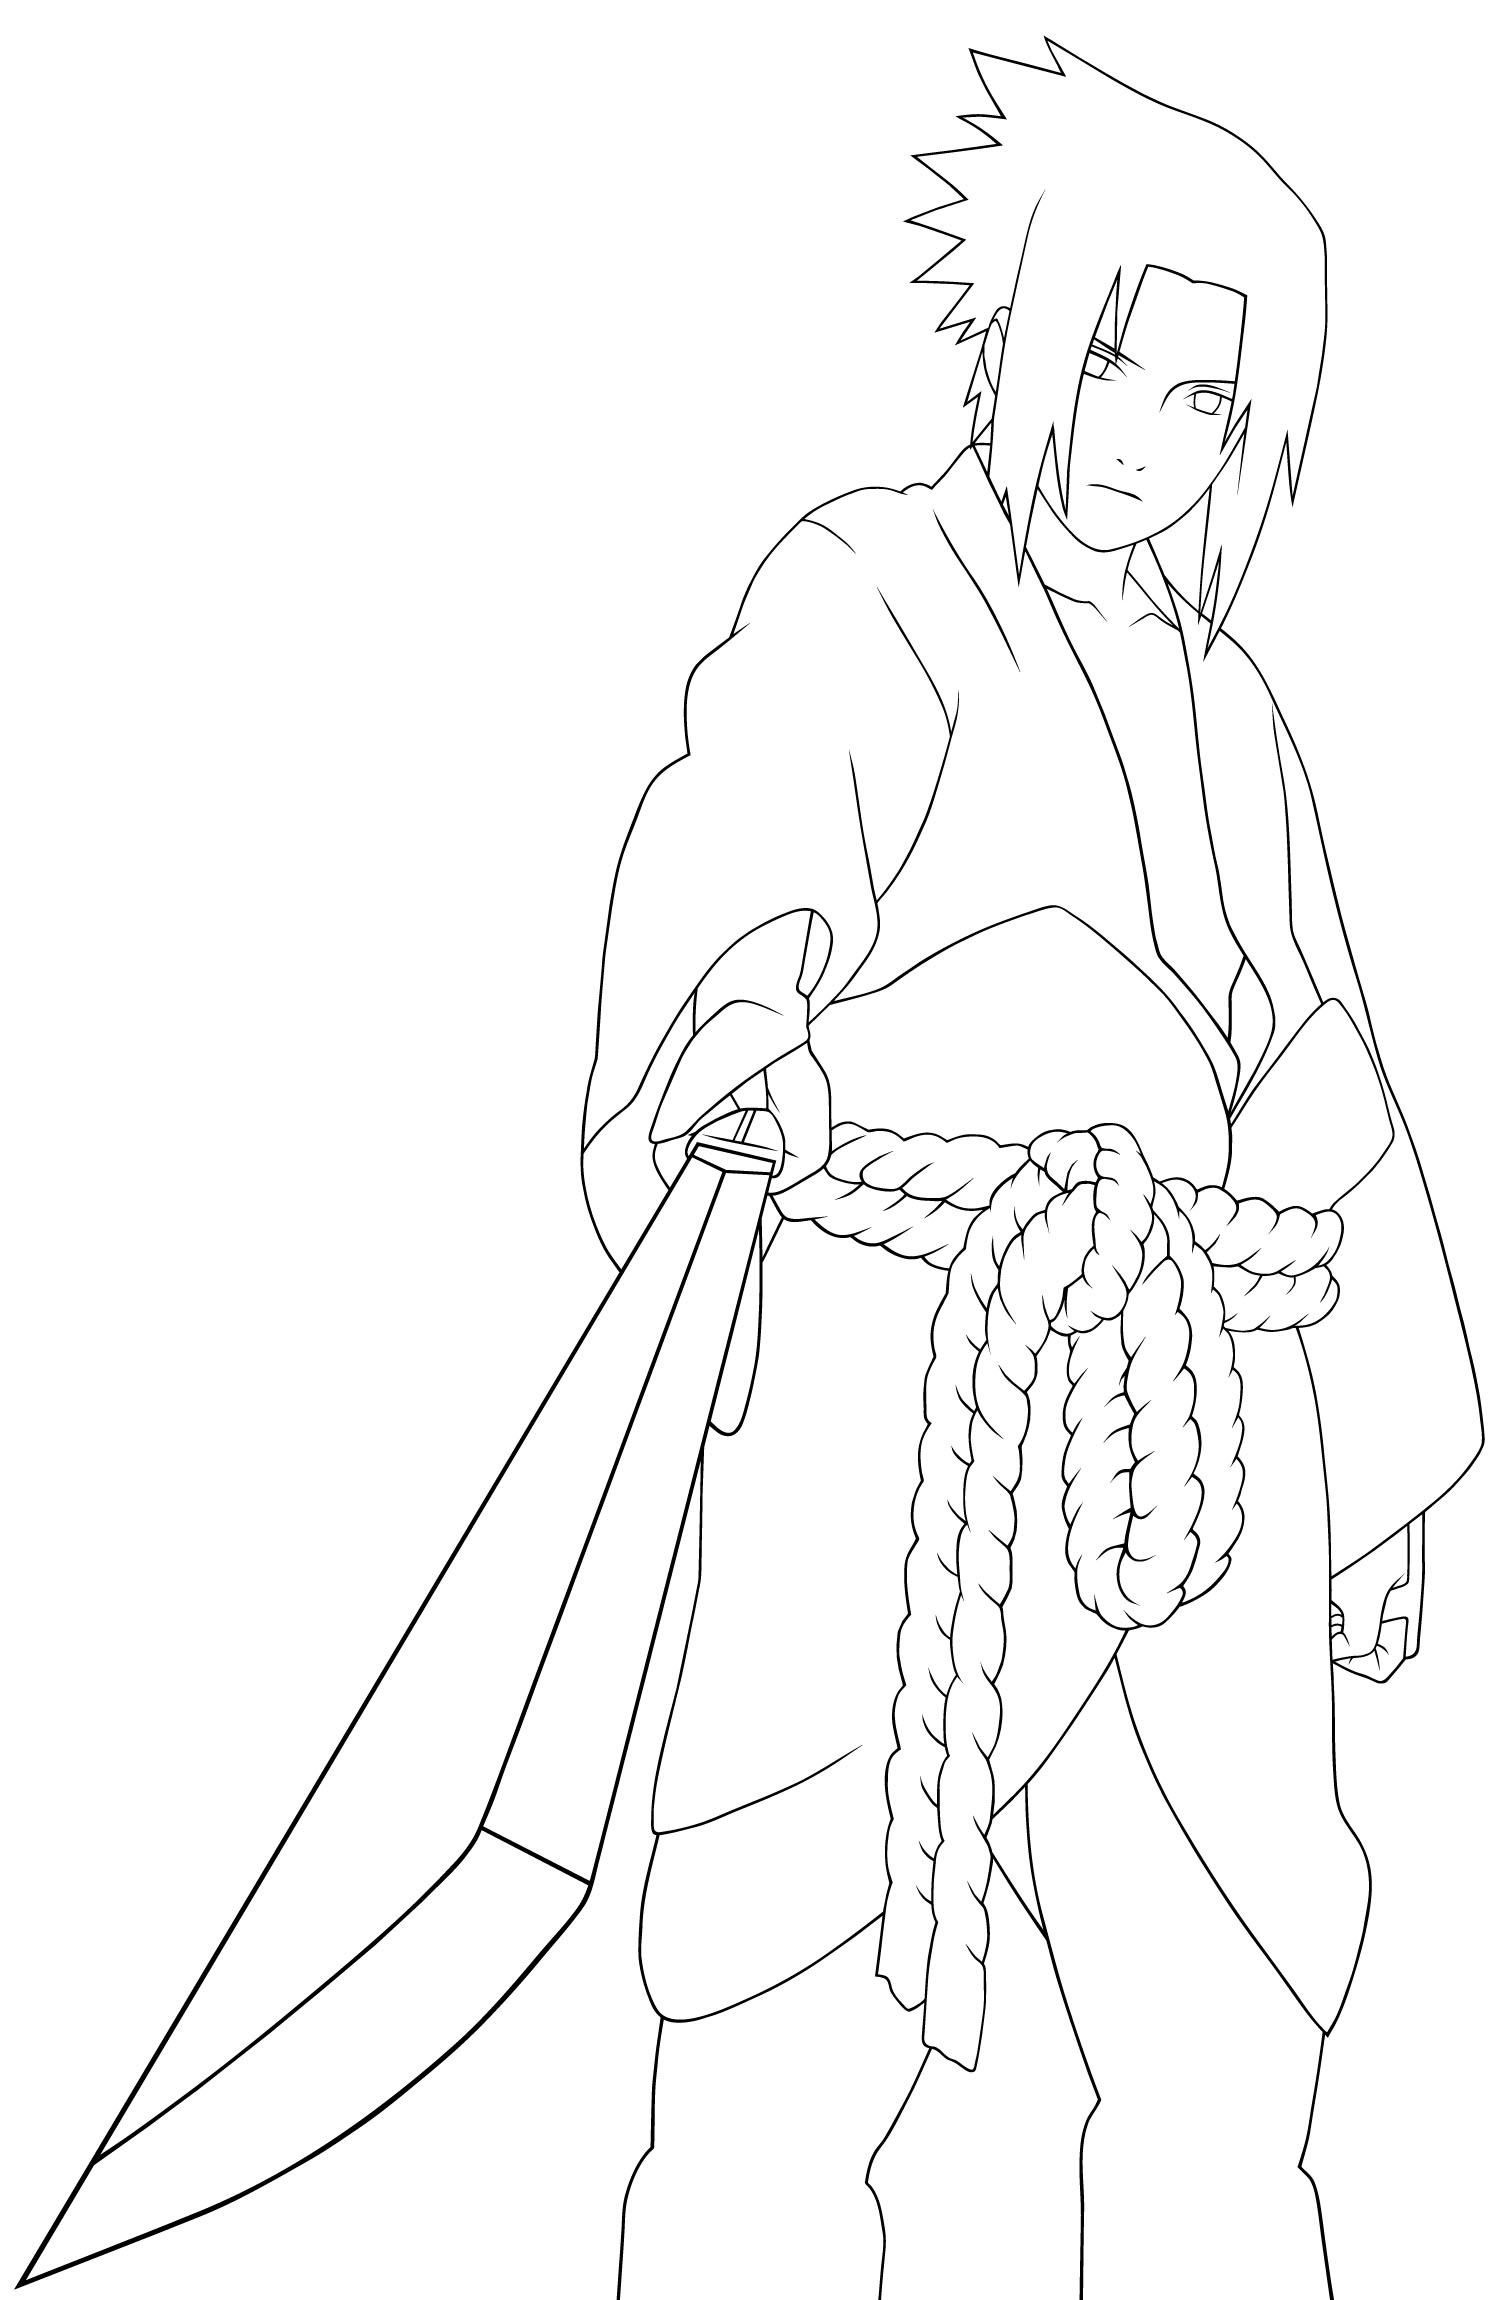 naruto coloring pages 999 - photo#22